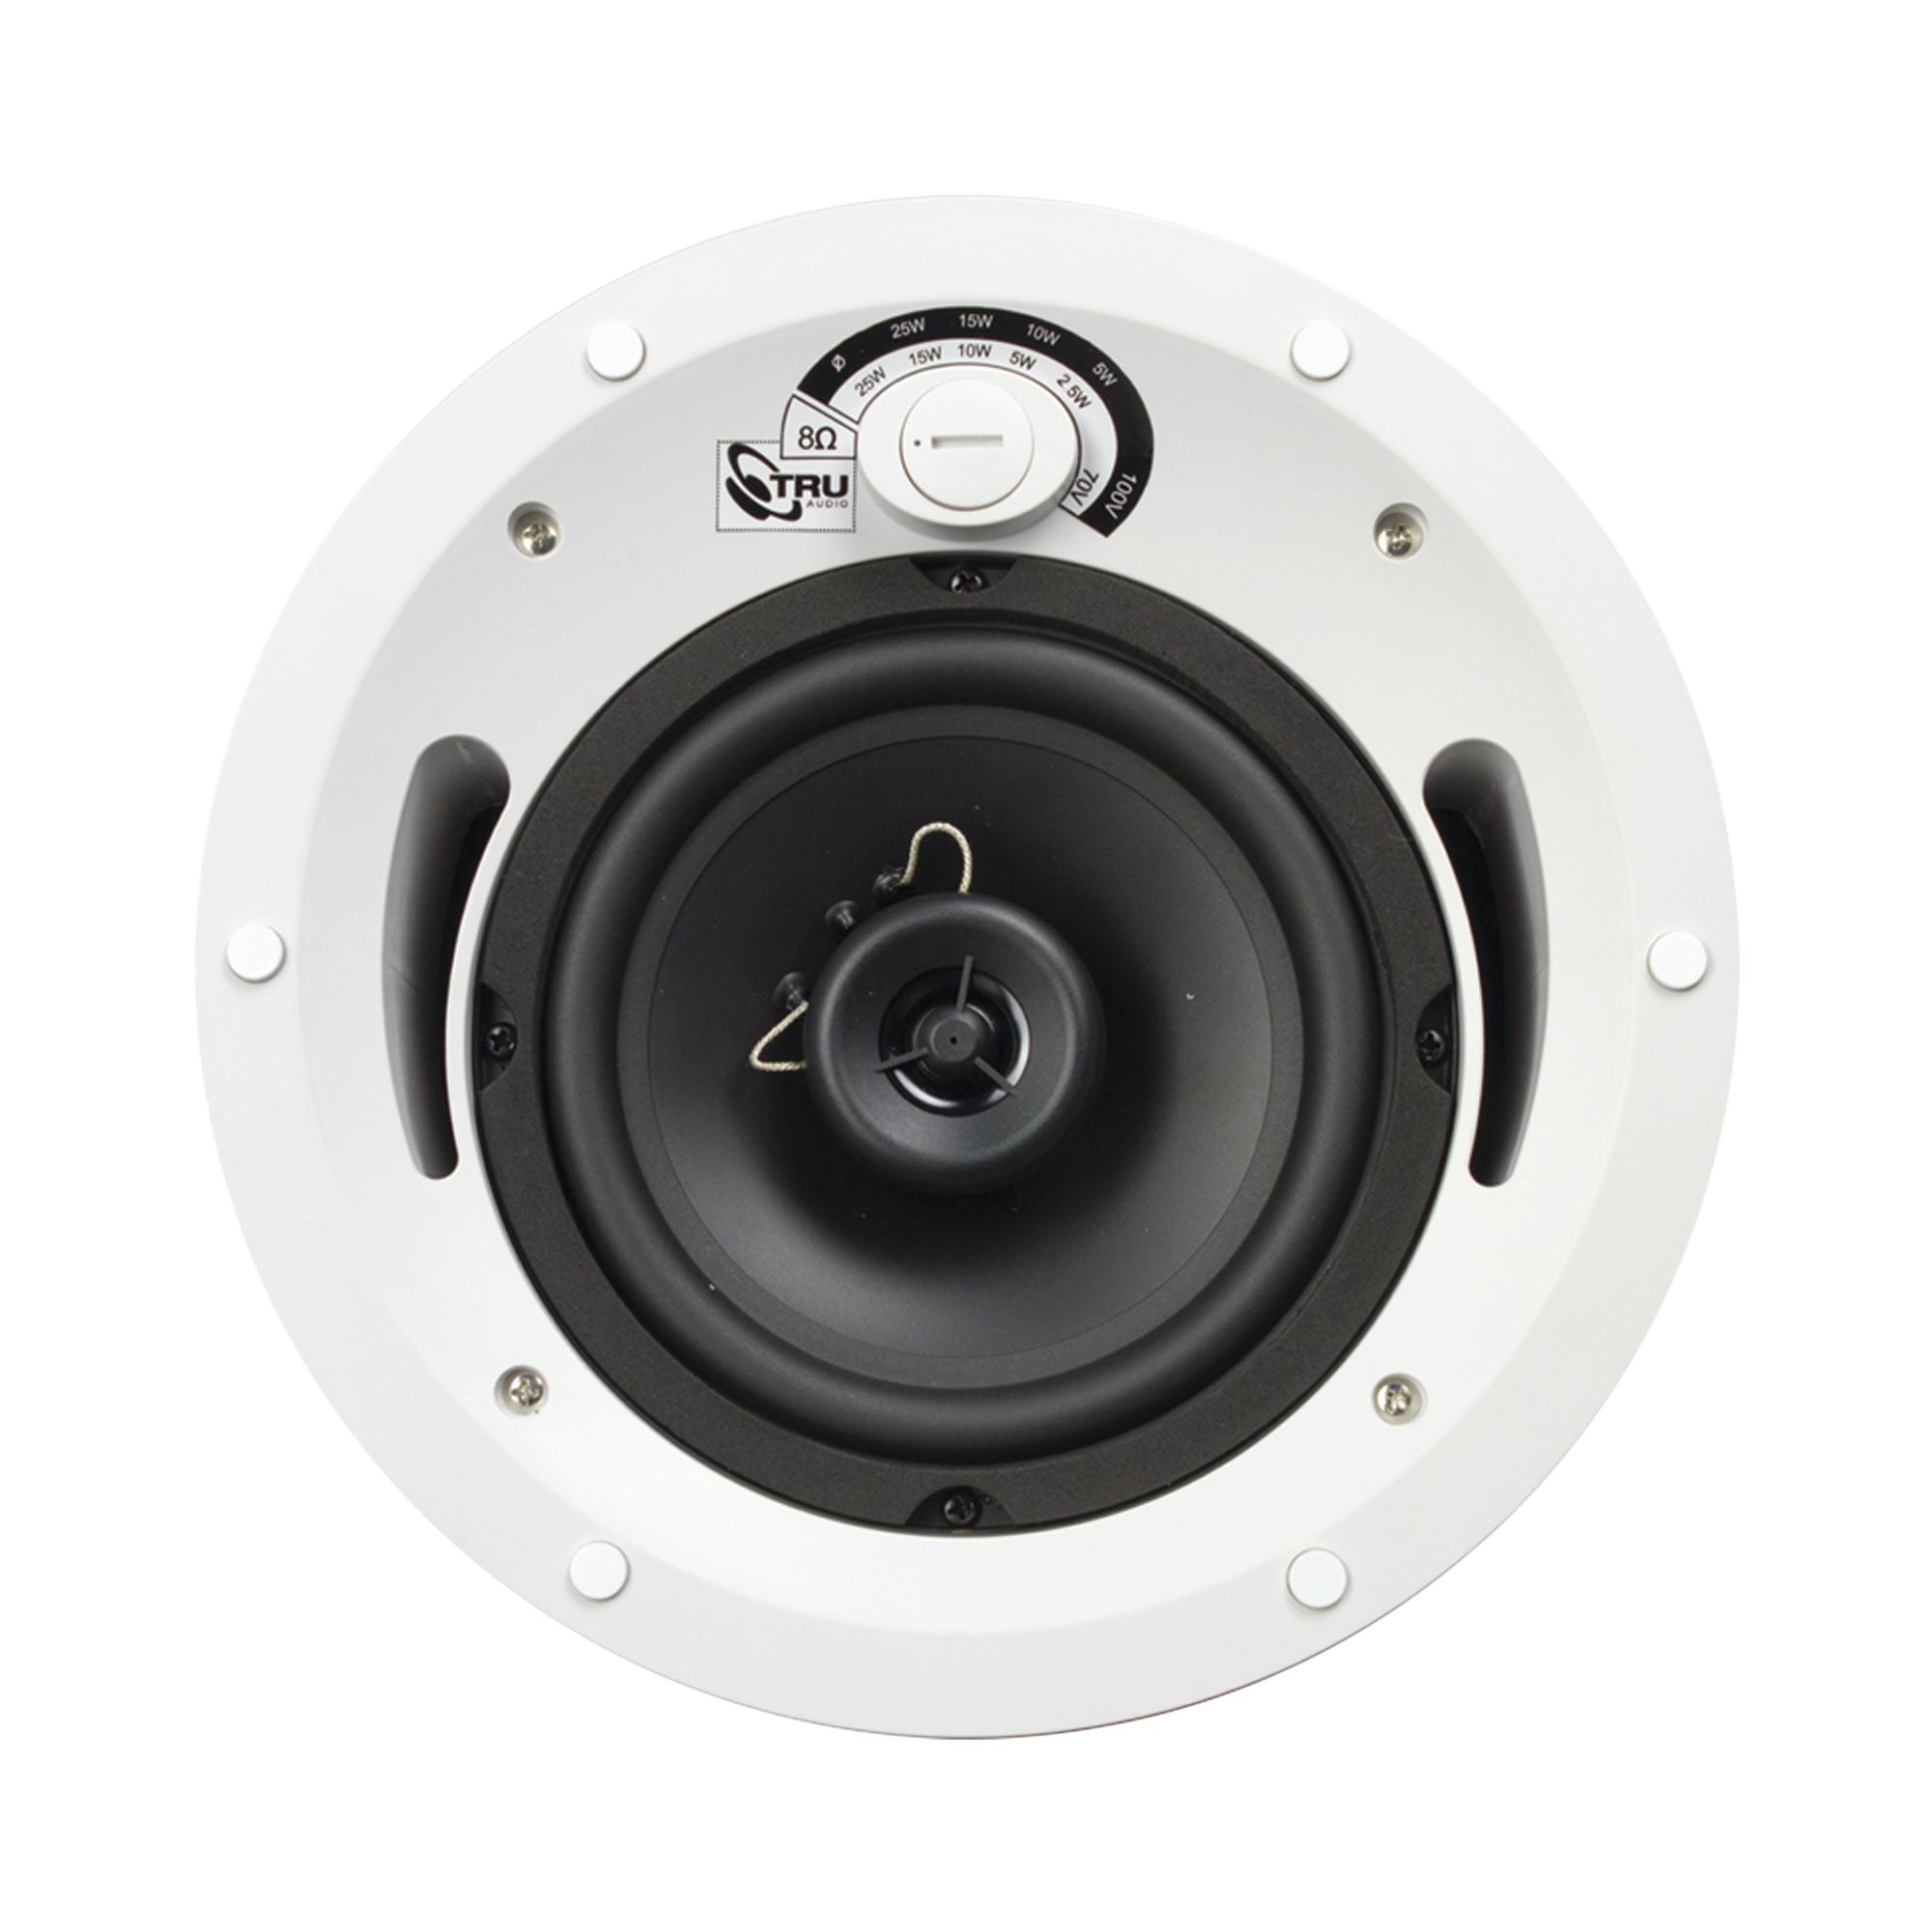 Altavoz comercial de 2 vias, 70V /100V /8 Ohms, en techo, woofer de polietileno 6.5 in, tweeter PEI 3/4in, 5-60 Watts, UL